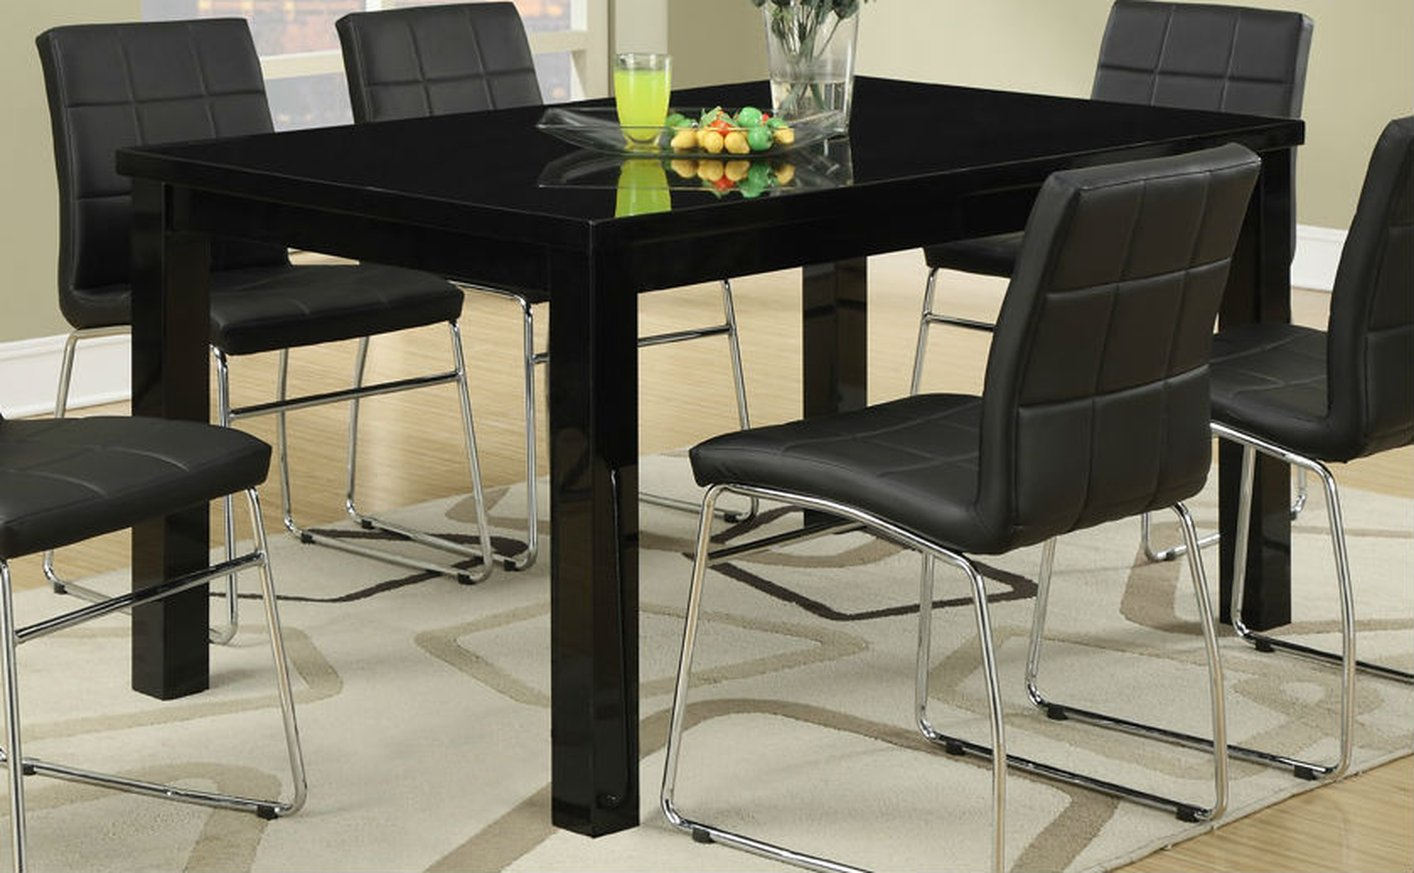 pndf2411 p4734_1__28769.1410263933.1280.1280 black-wood-dining-table-515 & Black 7pc Upholstered Dining Set Poundex | Hot Sectionals